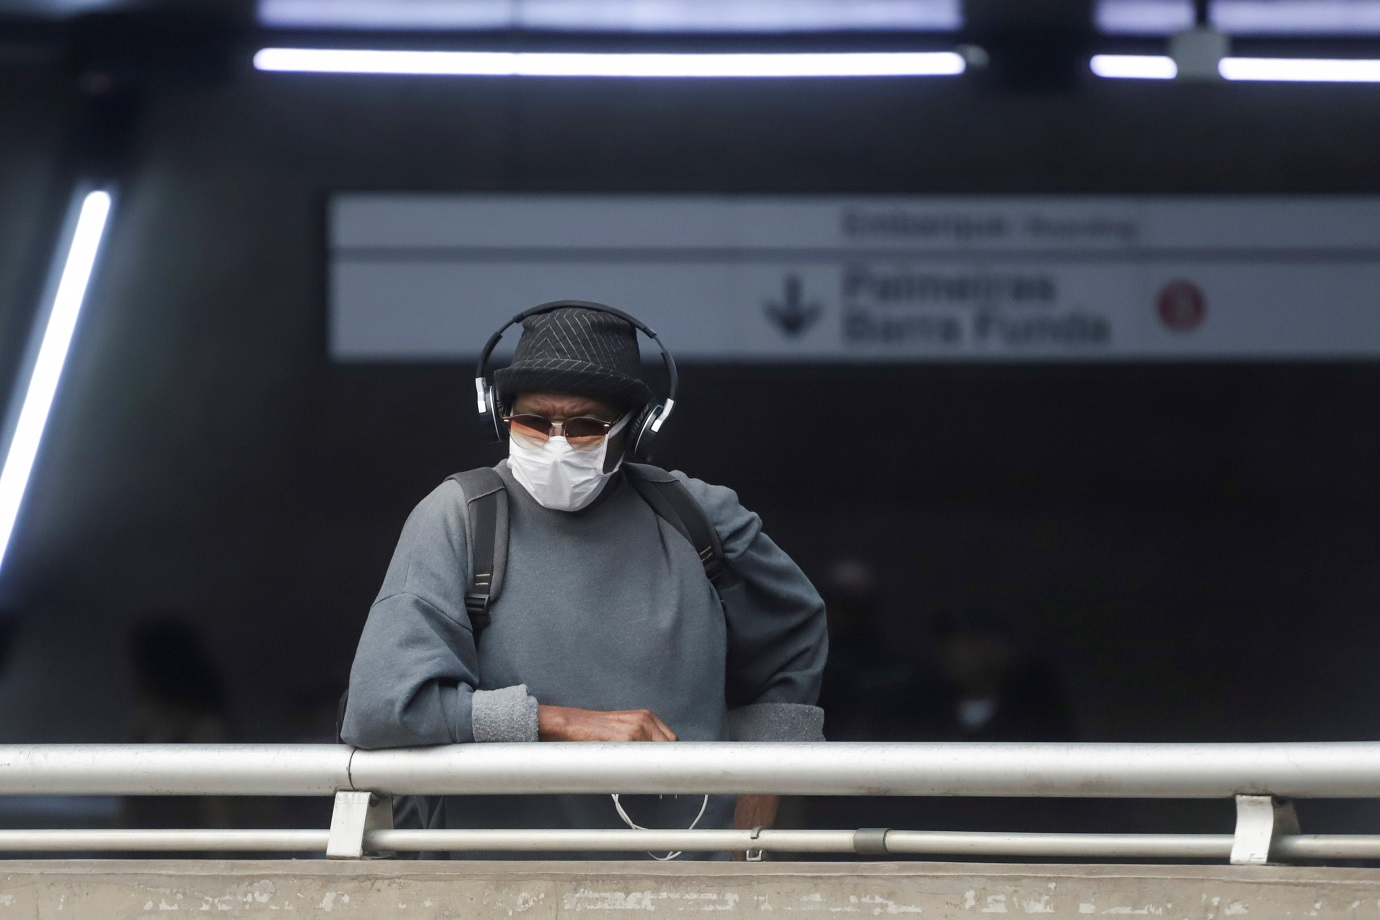 A man wears a protective face mask at a subway station after reports of the coronavirus in Sao Paulo, Brazil March 6, 2020. REUTERS/Rahel Patrasso